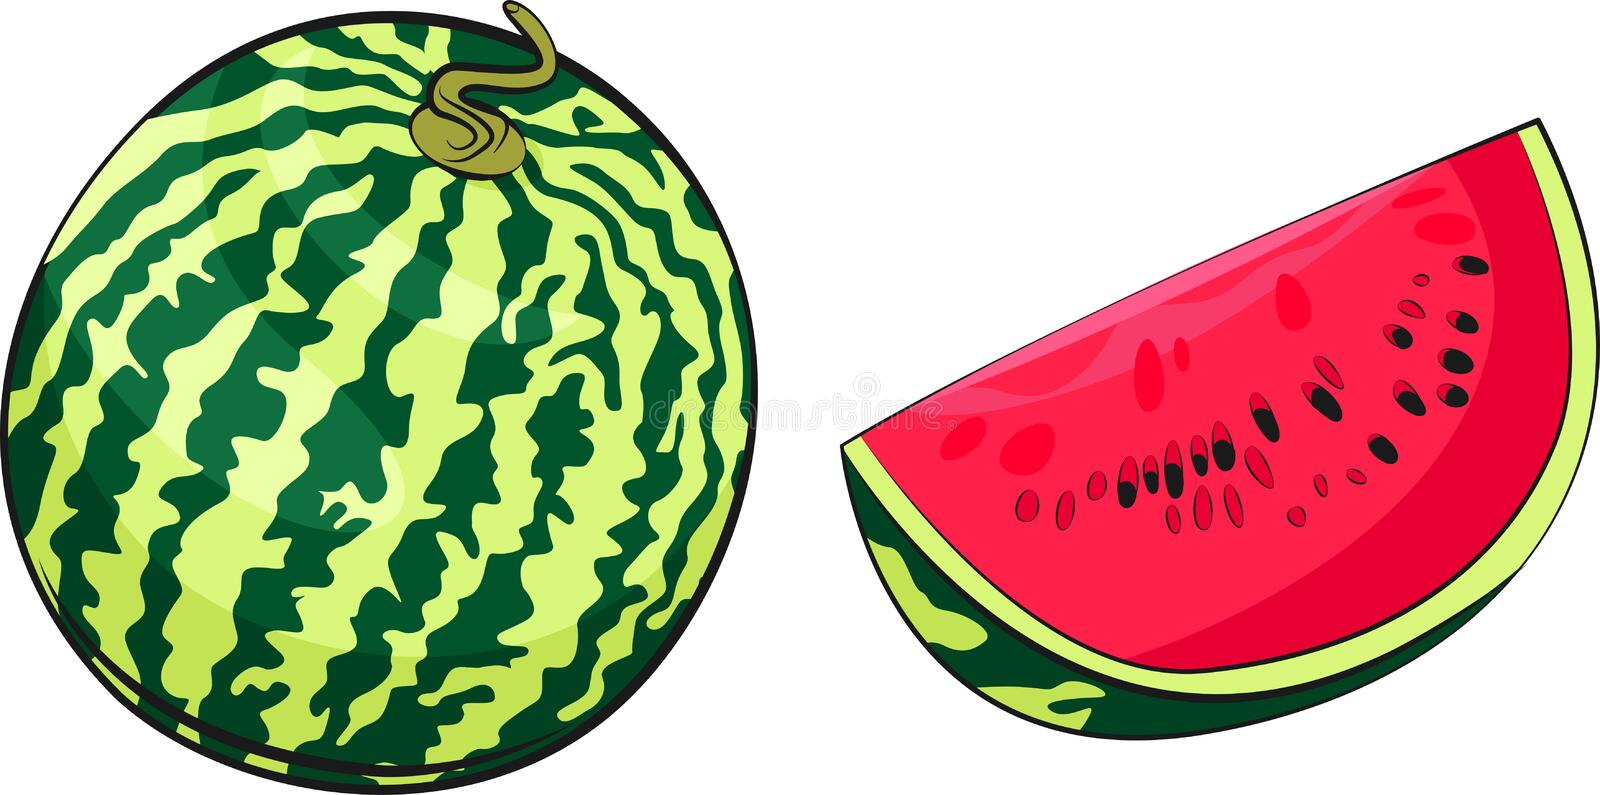 Watermelon vector illustration. Slice of juicy raw watermelon. Food illustration. royalty free stock images